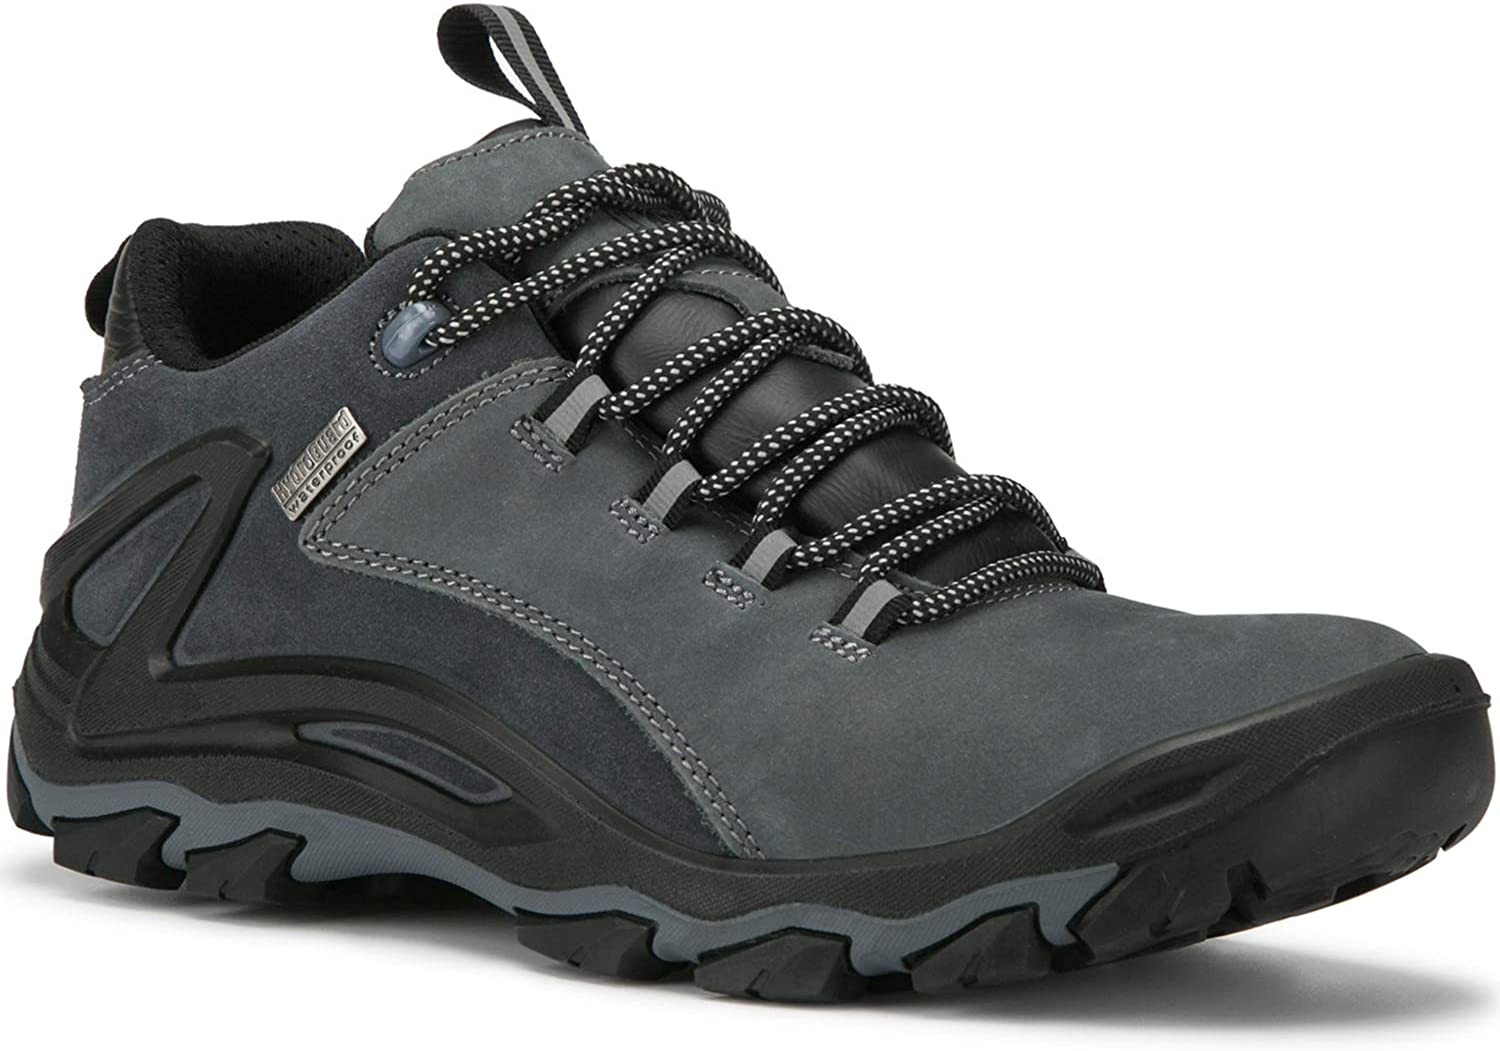 ROCKROOSTER Mens Hiking Shoes, Waterproof 4 Non Slip Outdoor Boots, Breathable, Lightweight, Anti-Fatigue, KS252 KS253